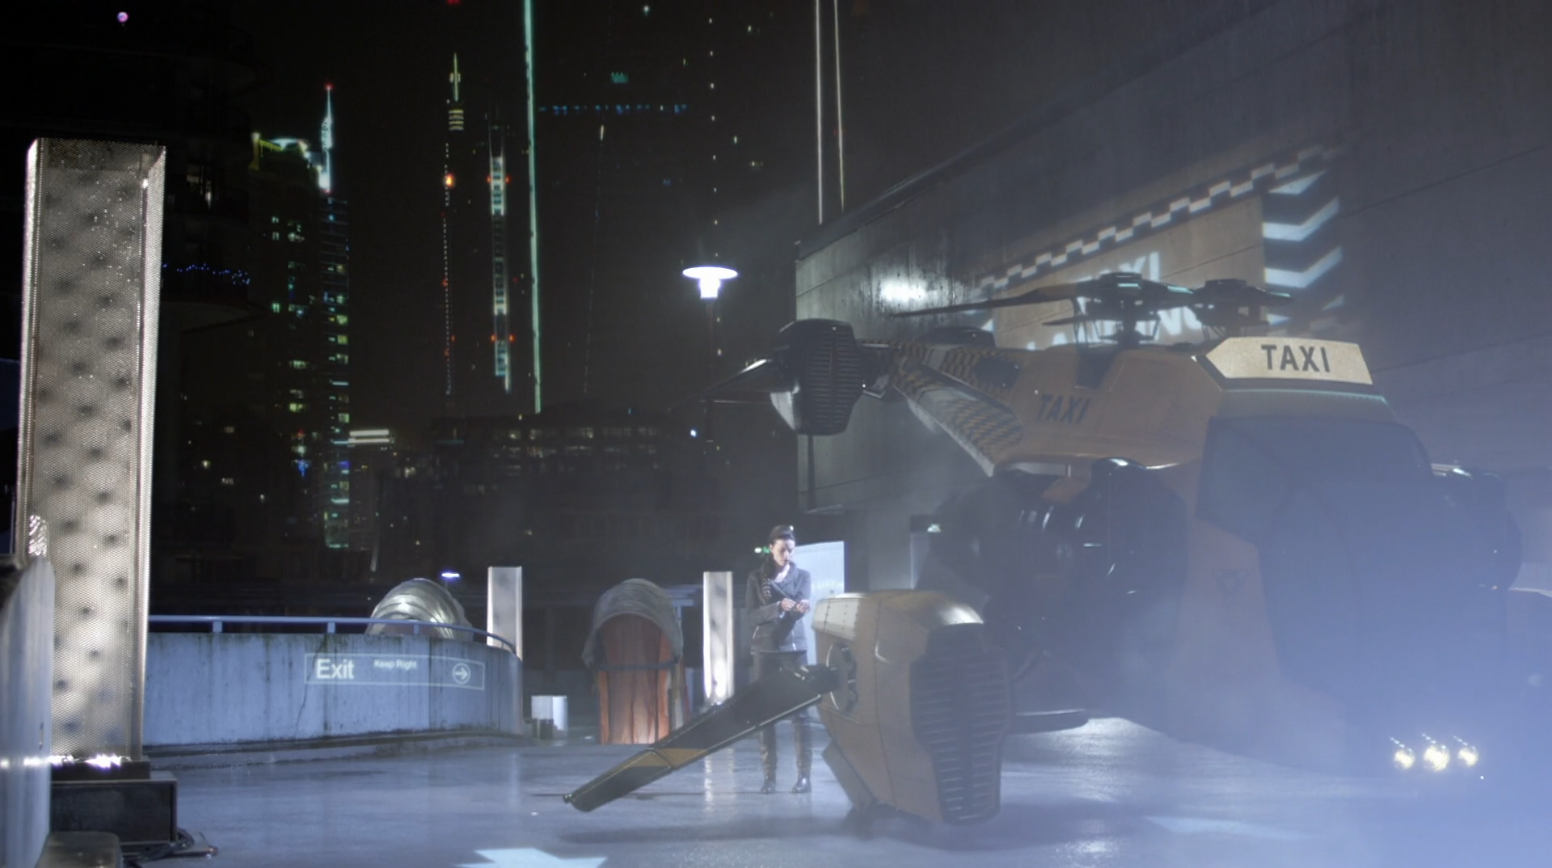 Kiera (Rachel Nichols) with a taxi from 2077 - Continuum - Second Thoughts